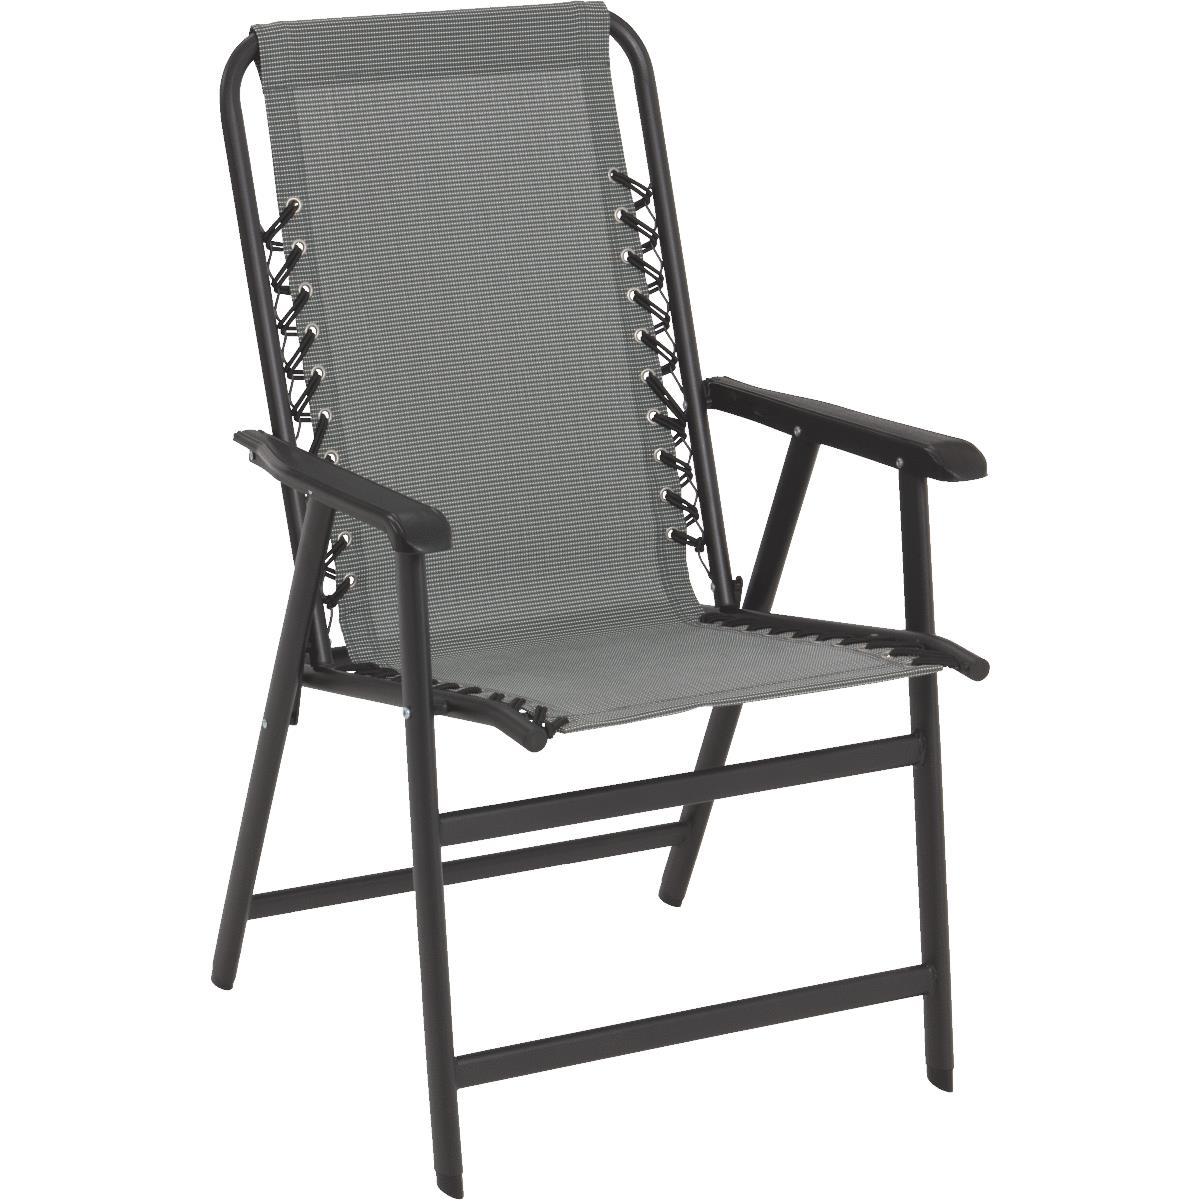 Outdoor Expressions Seville Folding Lawn Chair